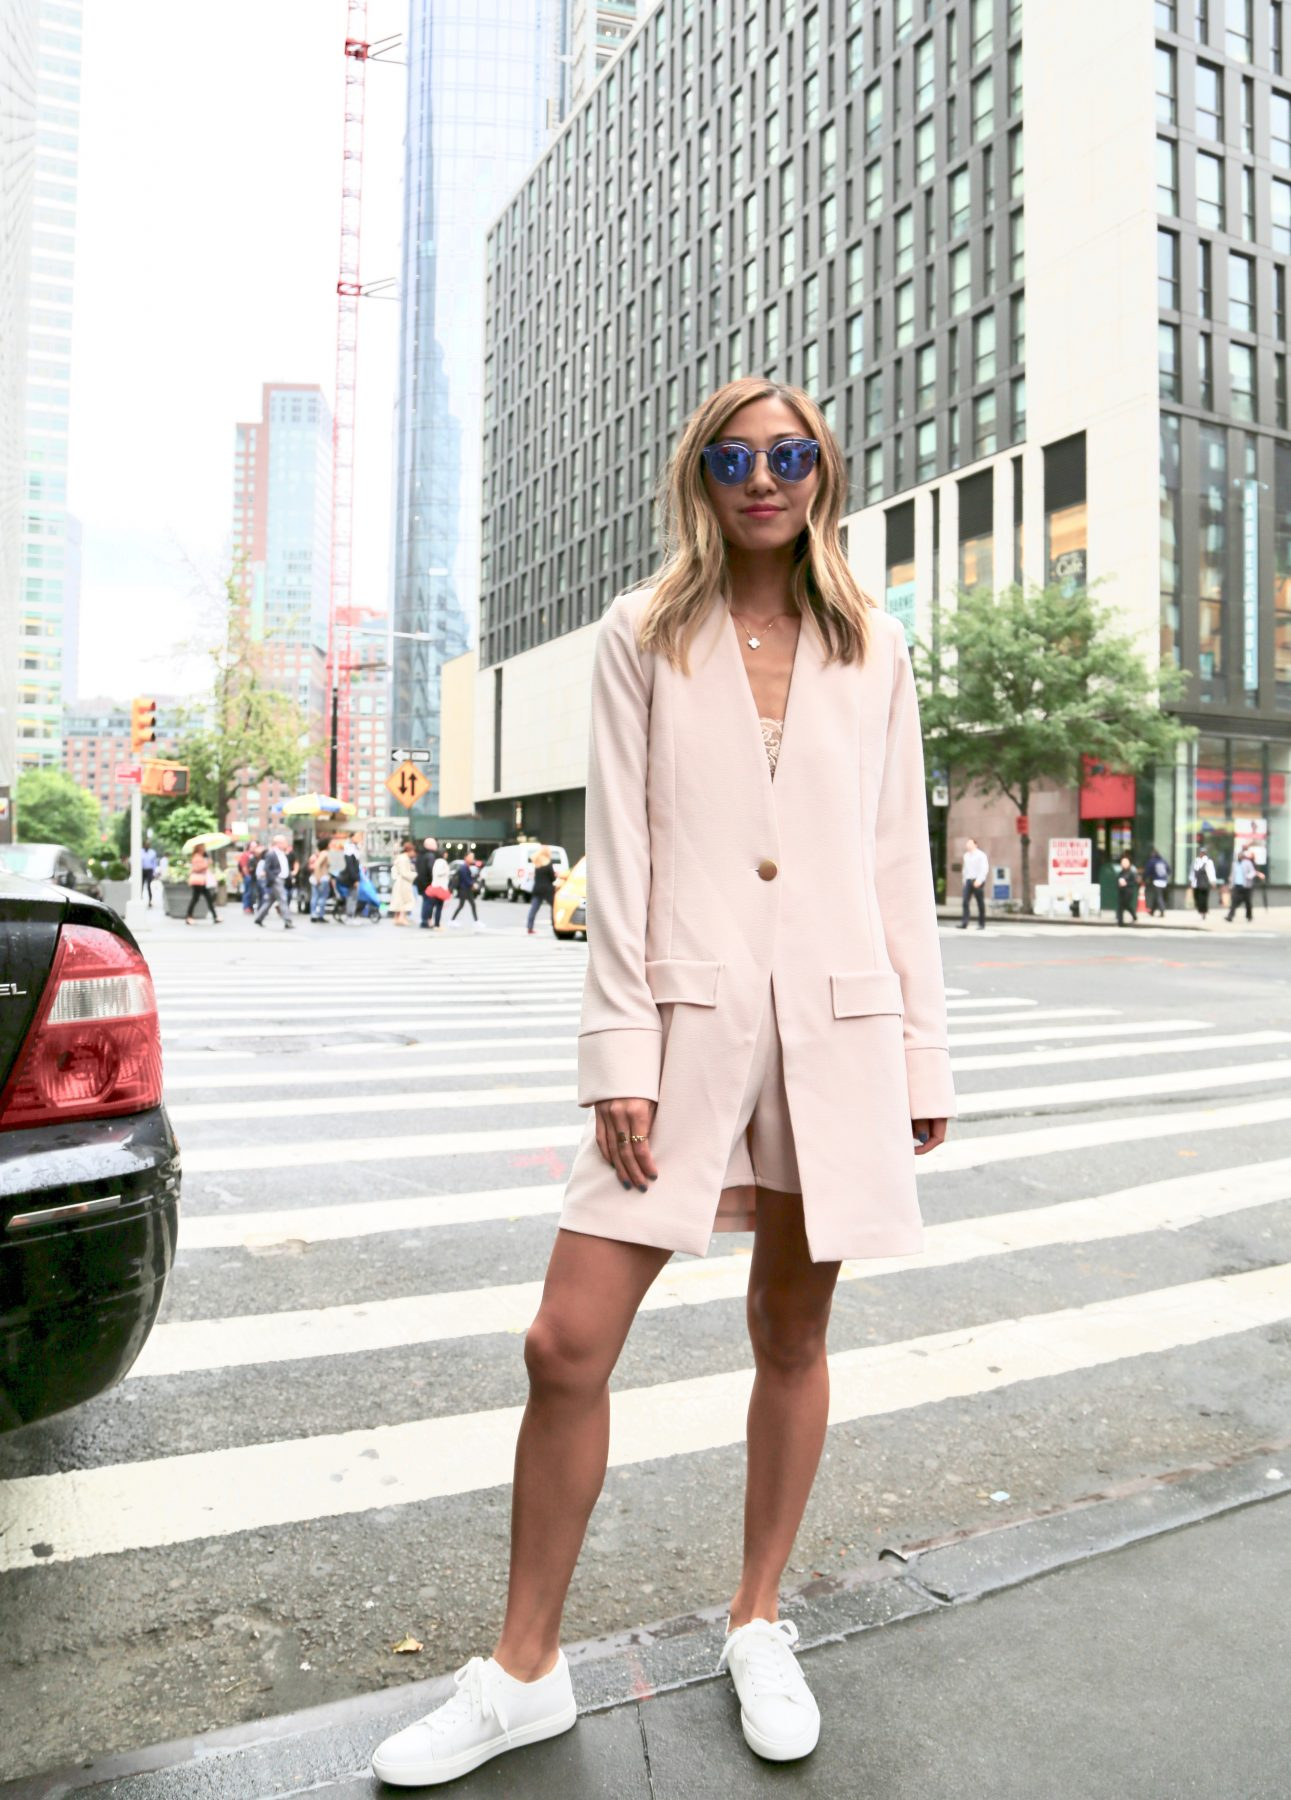 146bb85133ef91 Suited Up (NYFW Look) · September 12